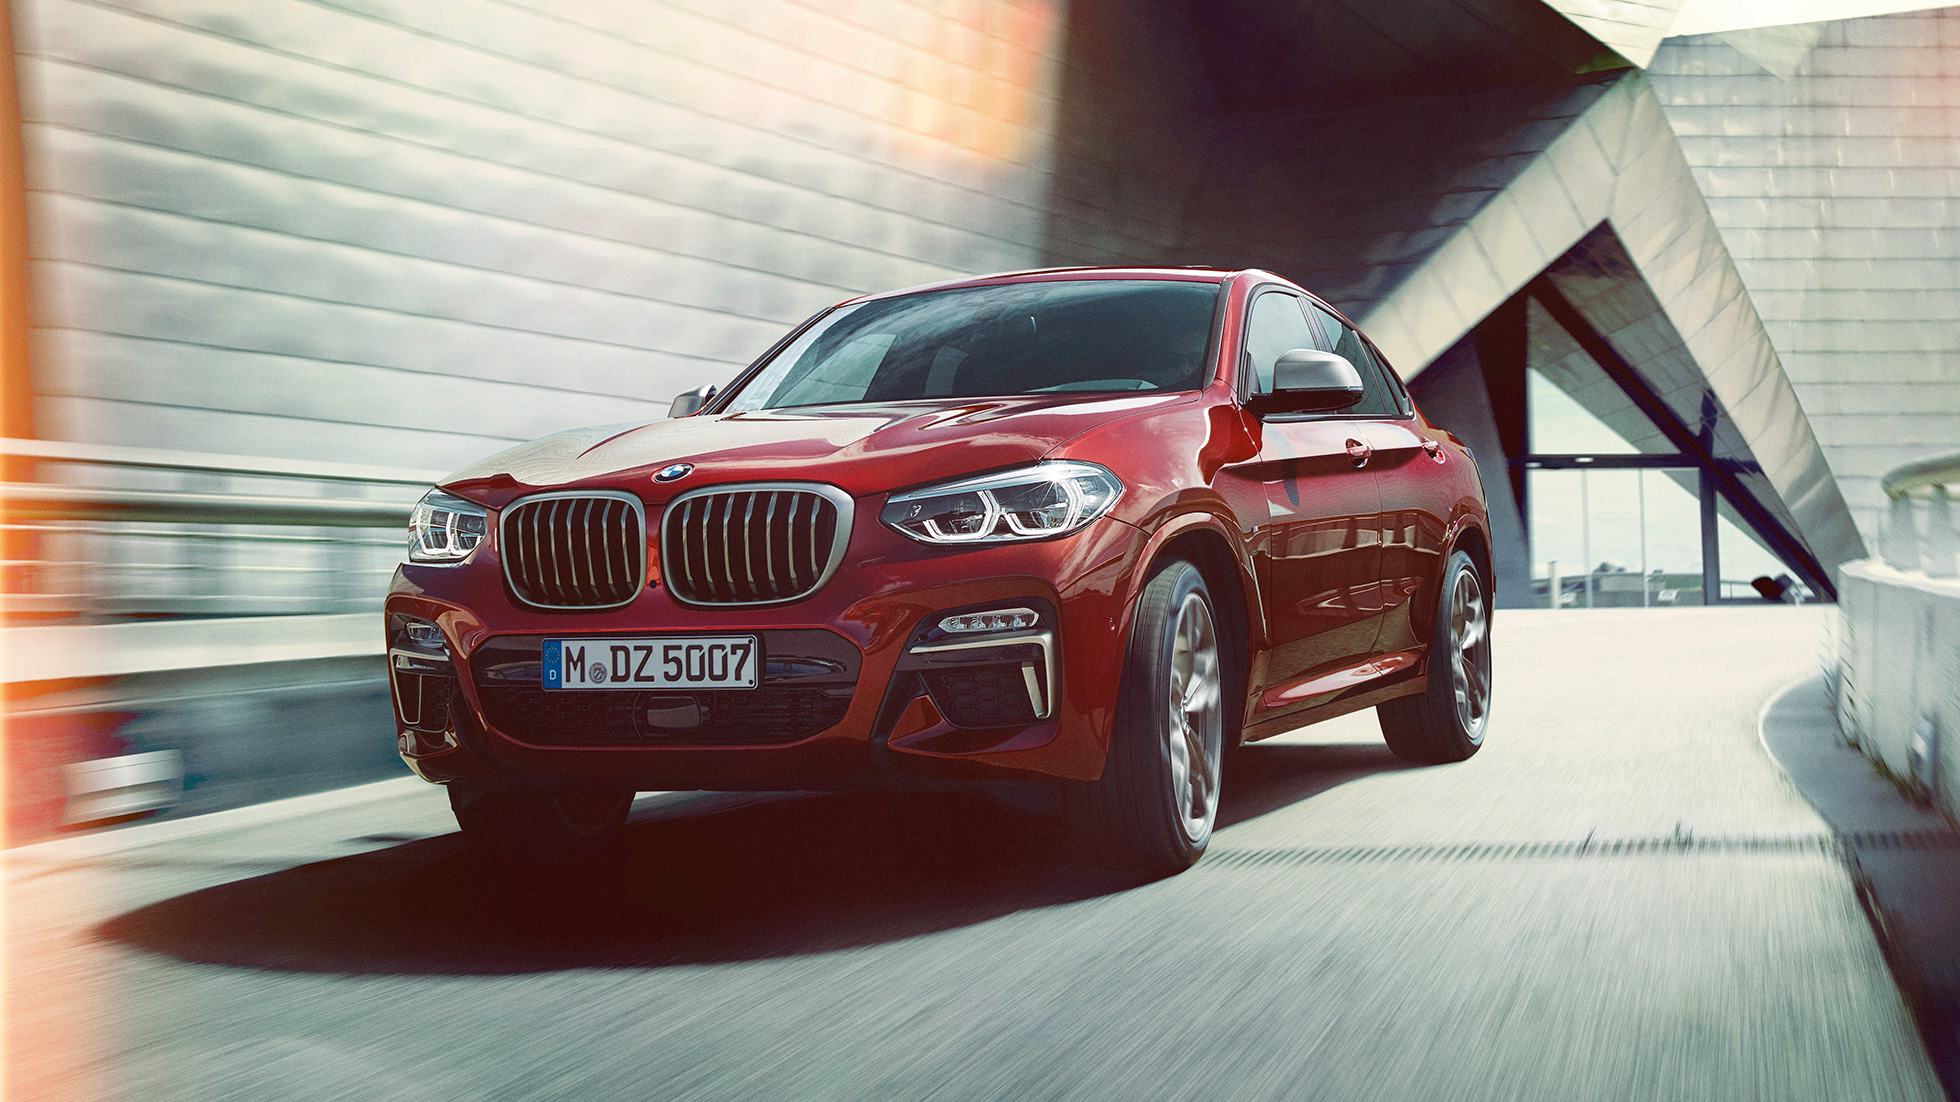 BMW X4 M40i 2018 Flamenco Red efecto brillante, vista frontal de tres cuartos